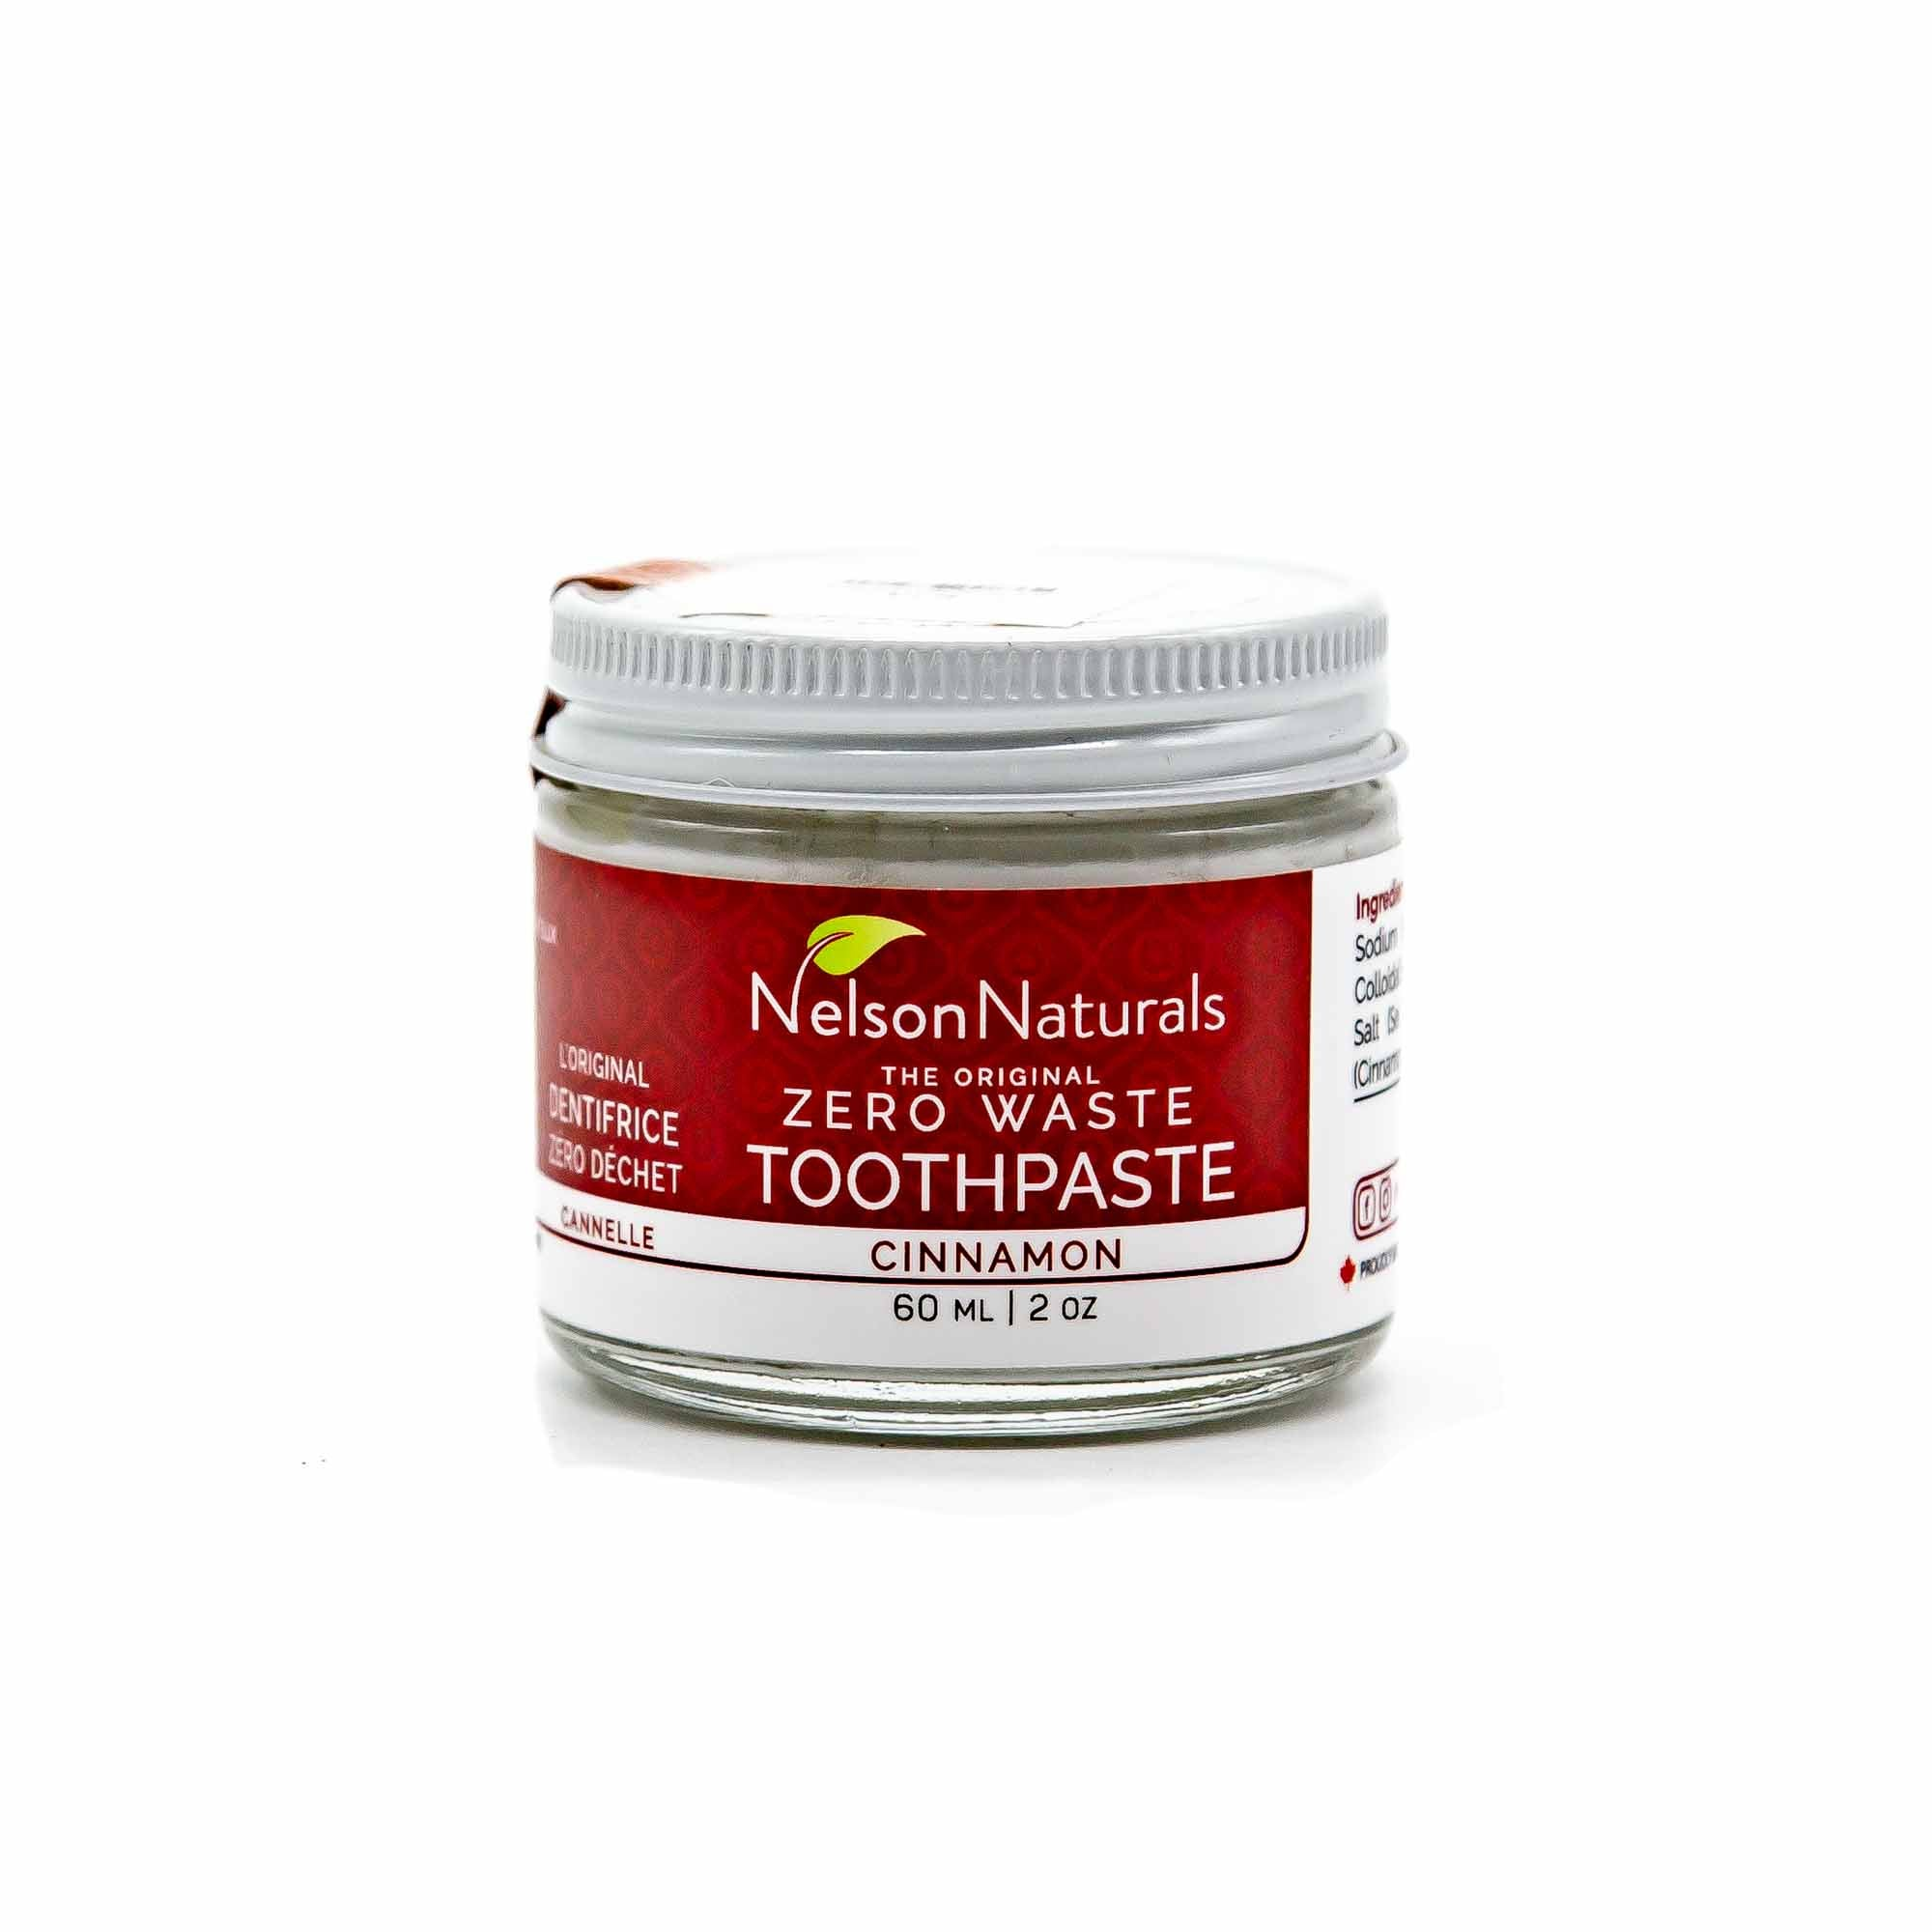 Nelson Naturals Cinnamon Toothpaste - Mortise And Tenon